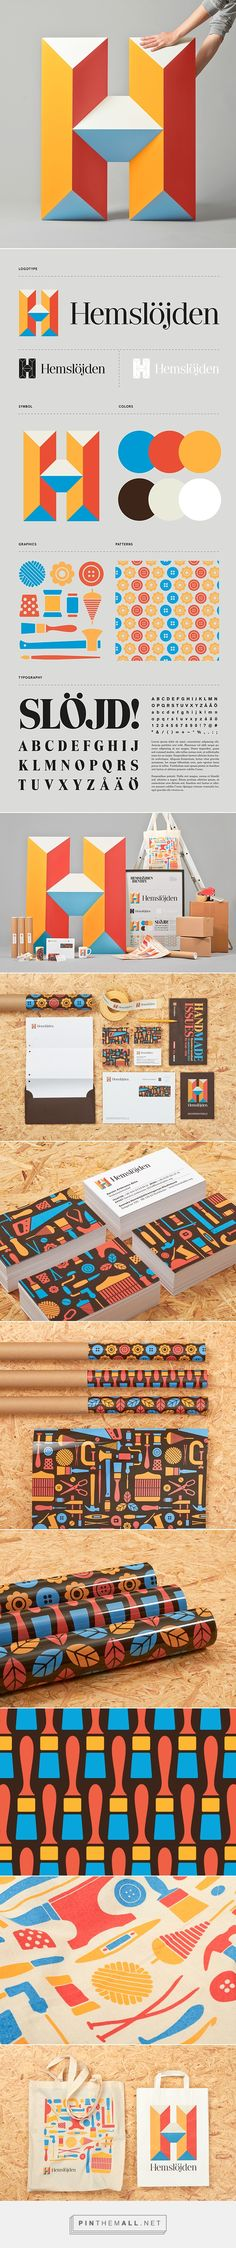 Swedish Handicraft Societies on Behance by Snask curated by Packaging Diva PD…